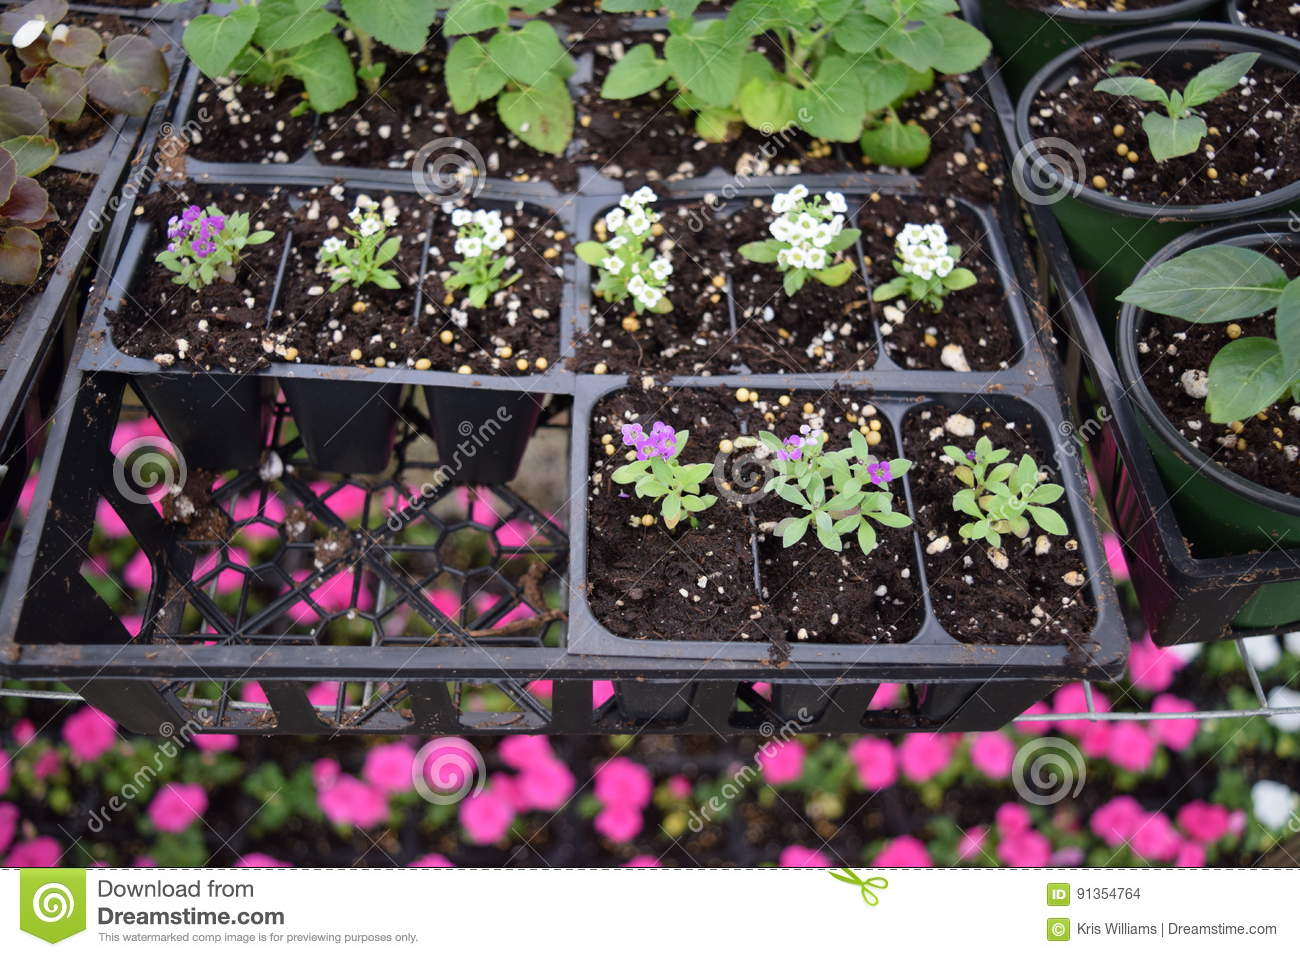 Flowers and plants in seed trays